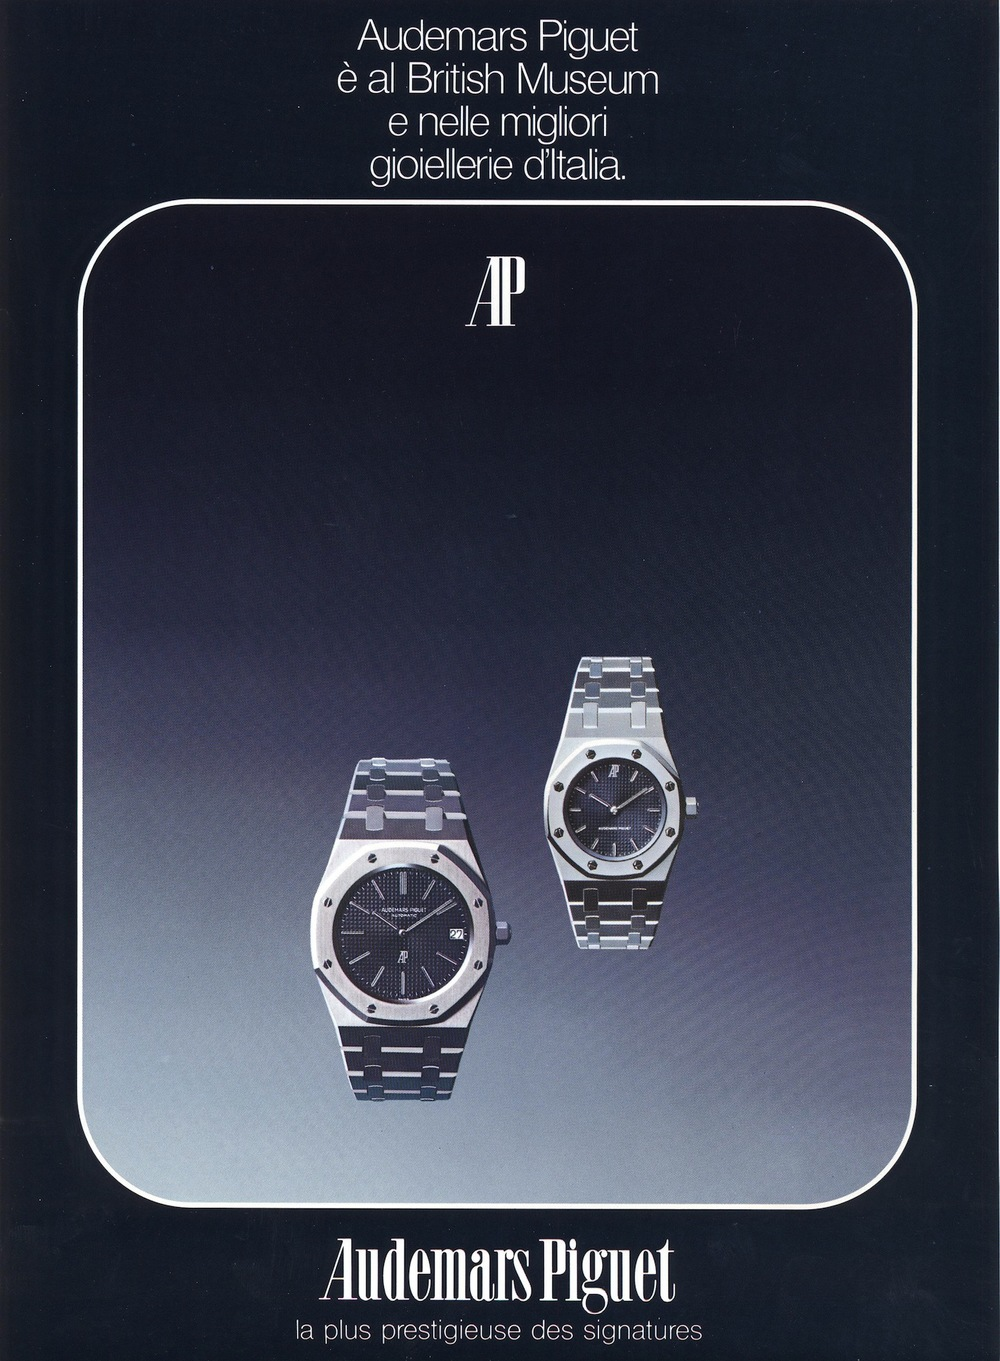 Royal Oak Advertisement circa 1974. Translation of Advertisement in Italian: Audemars Piguet is in the British Museum and in the best jewelers of Italy.